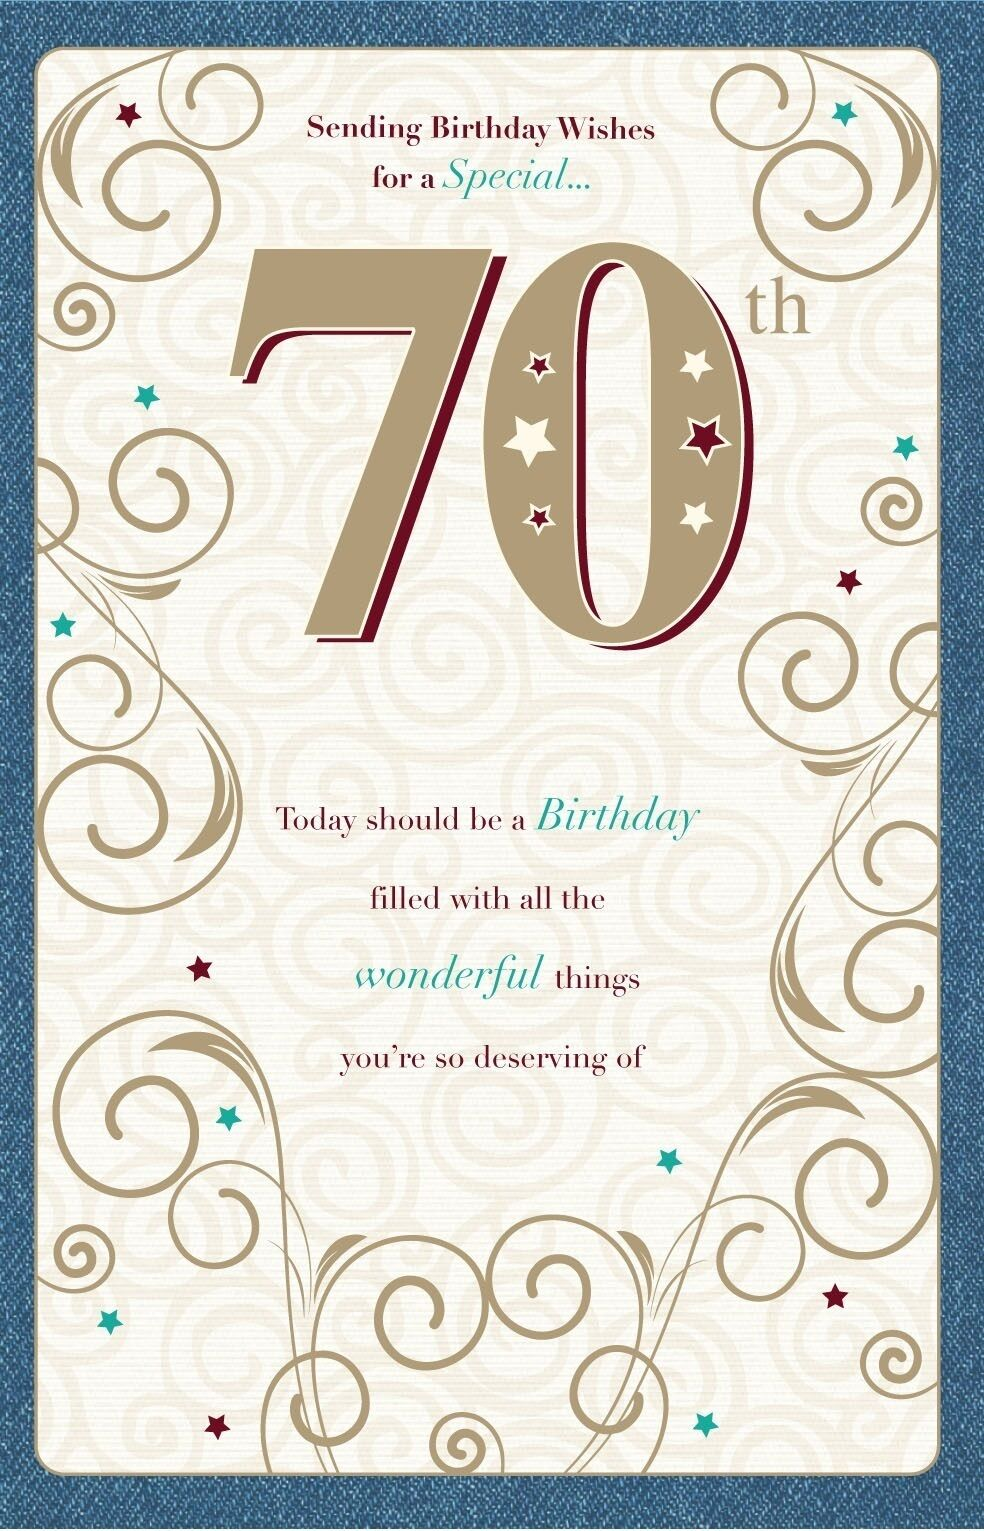 Sending Birthday Wishes For A Special 70th 70 Scroll Design Bright Happy Card Sale Online